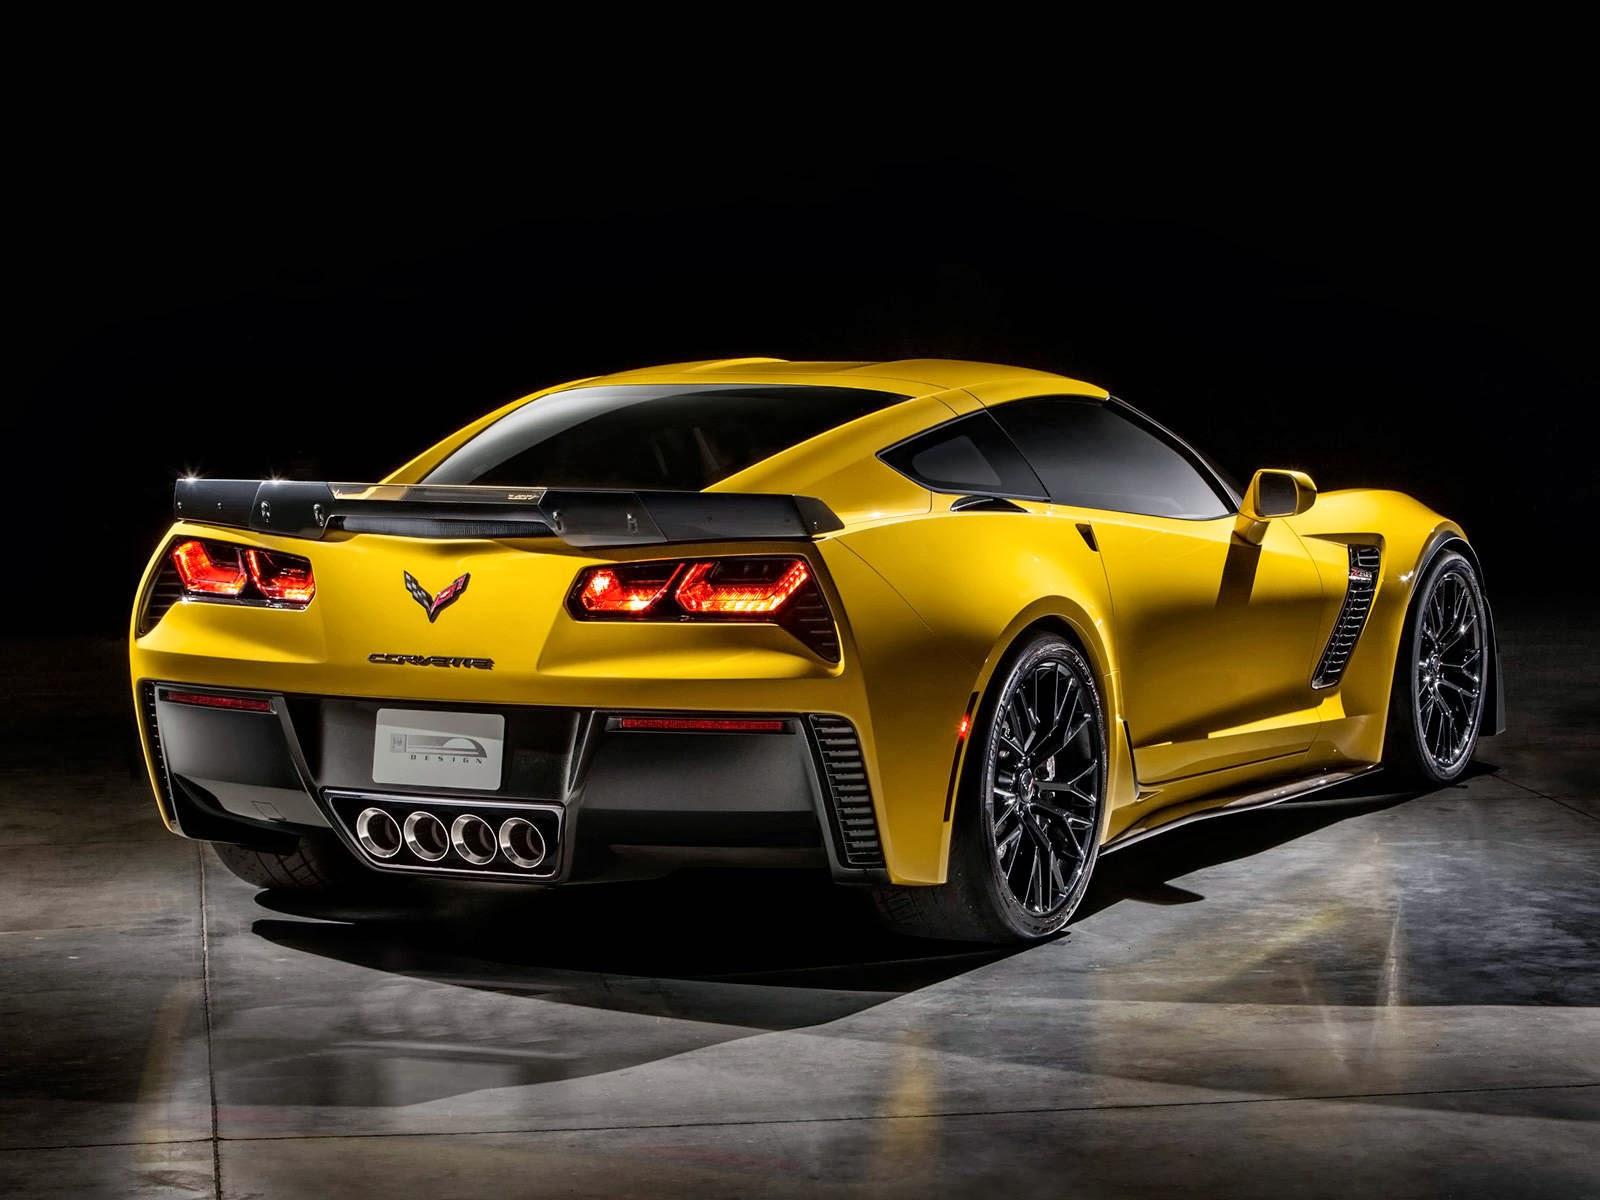 2015 Chevrolet Corvette Z06 Sport Car Picture